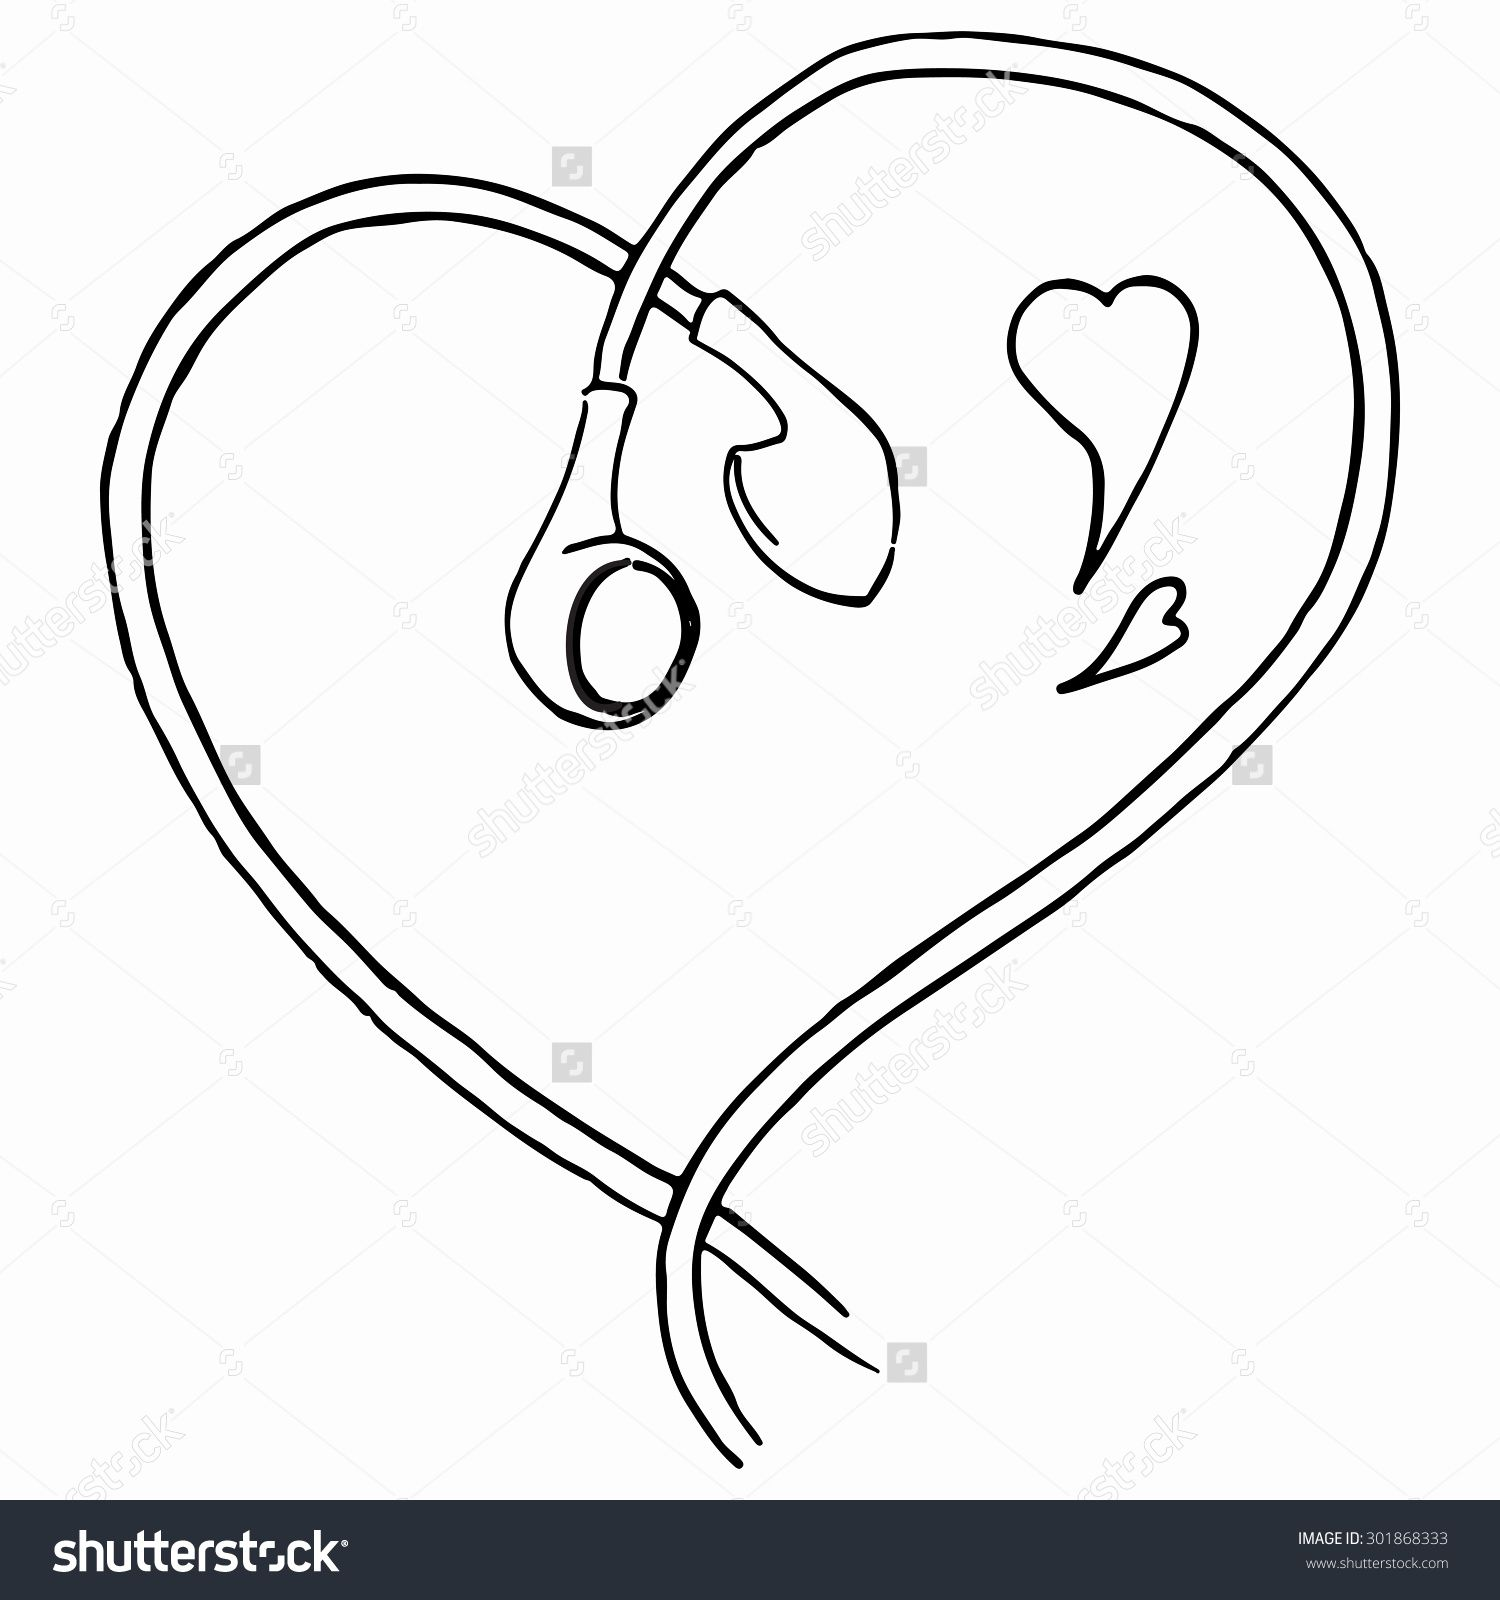 Image result for music earbuds draw